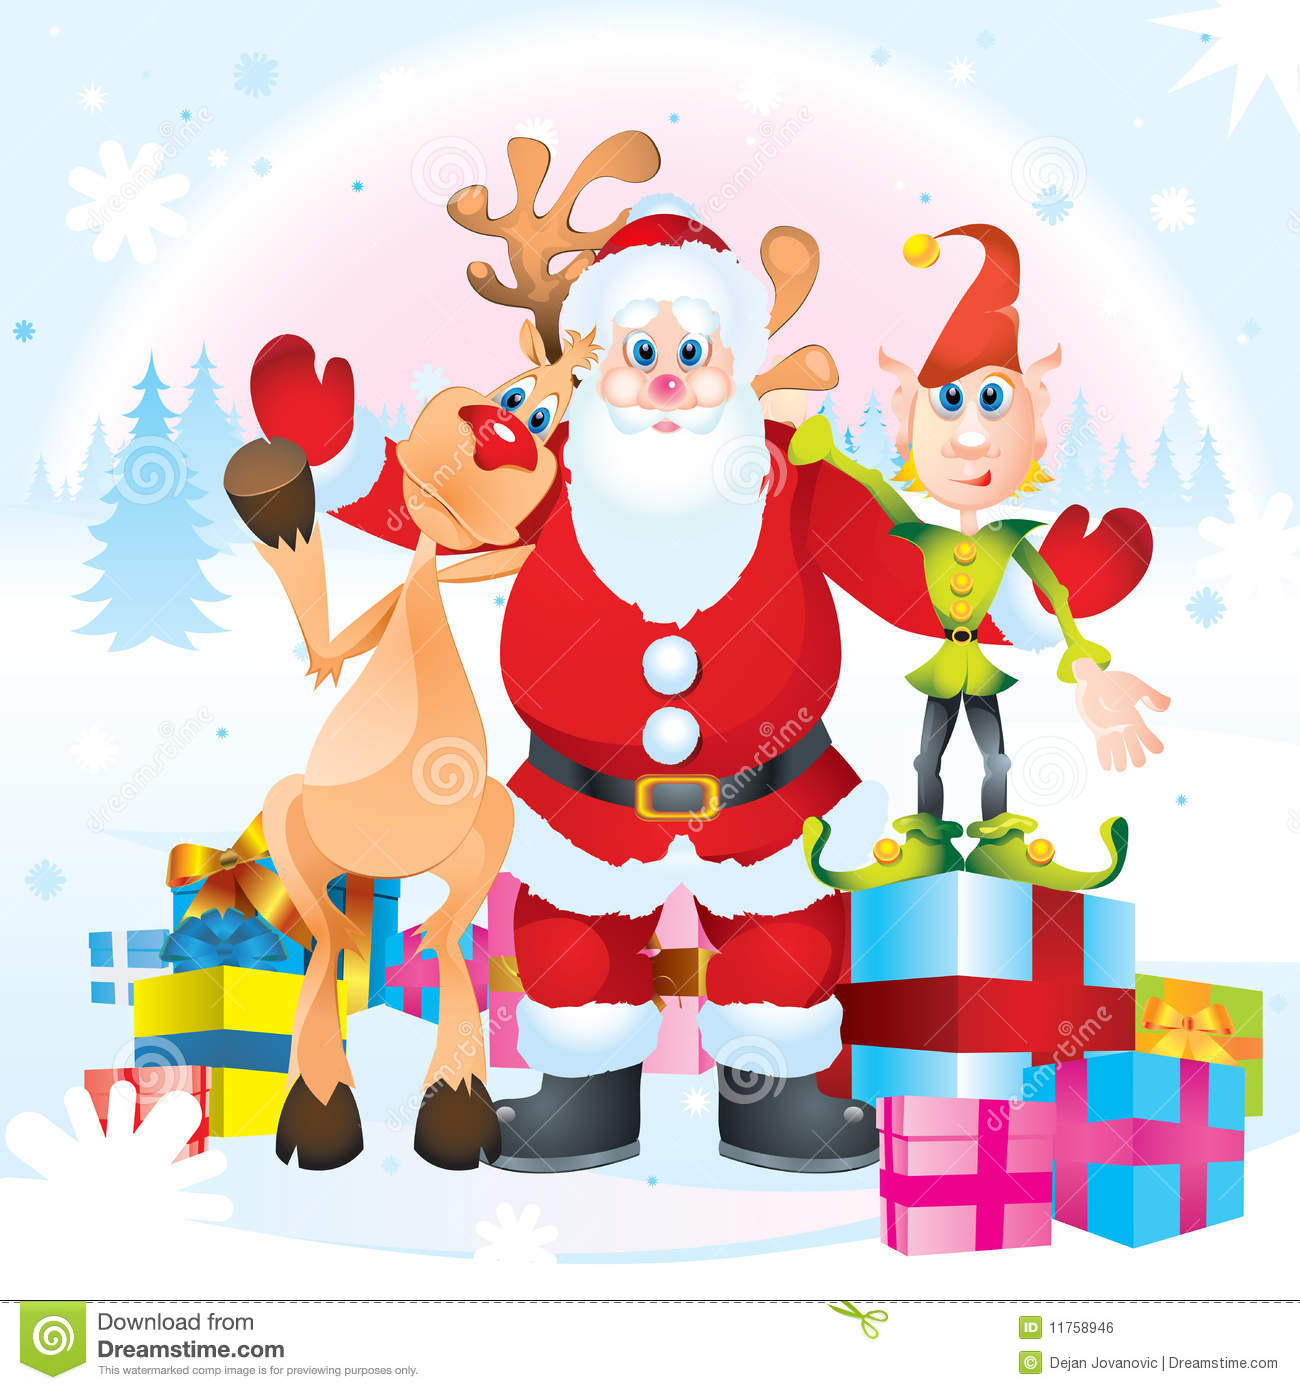 Santa clause rudolph and elf royalty free stock image image